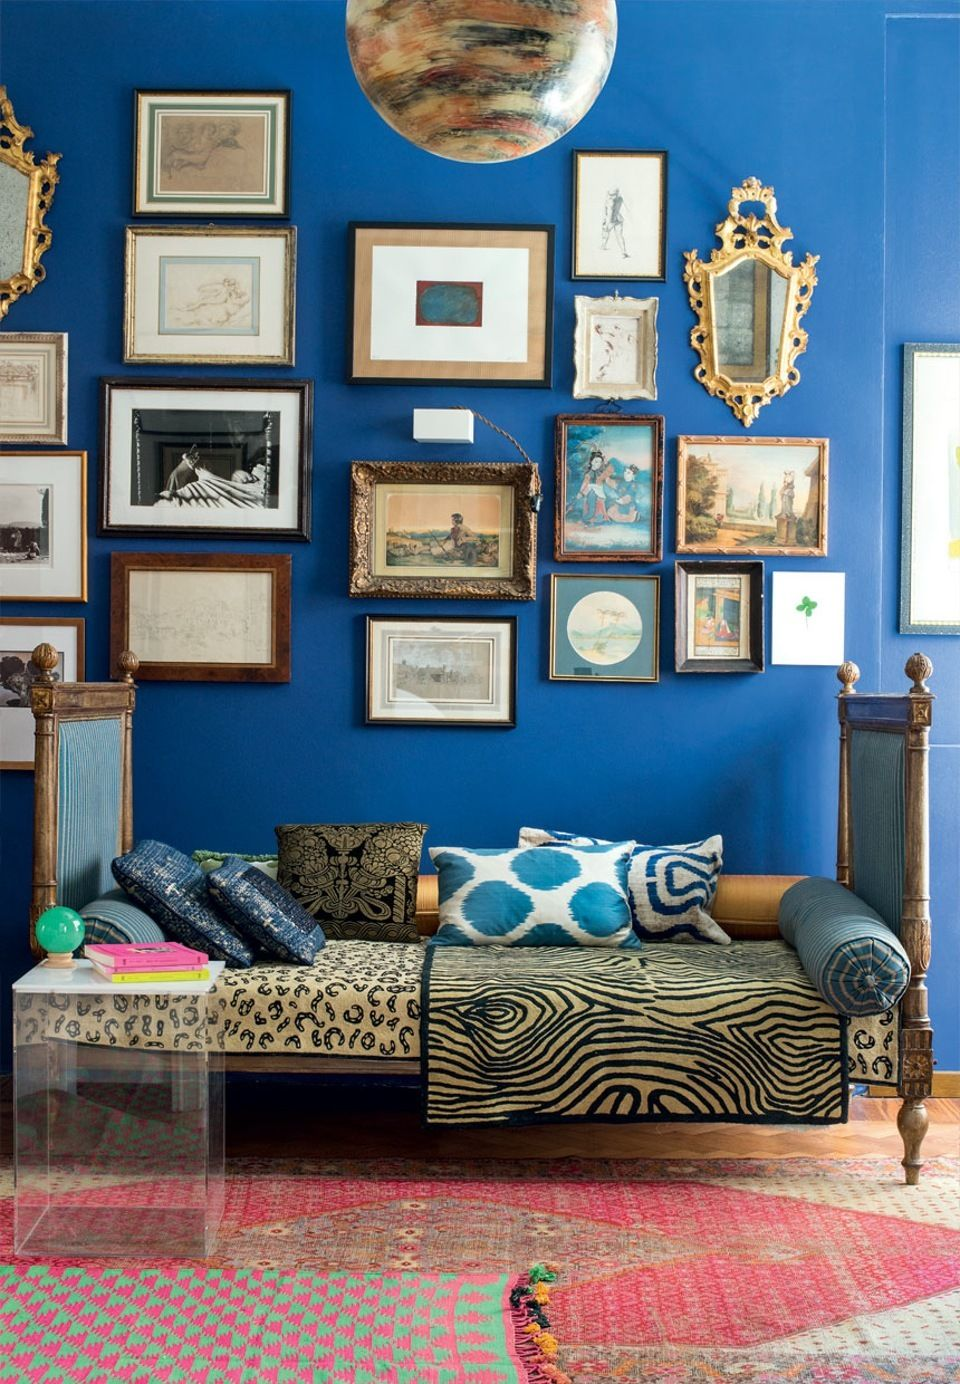 Antique gallery wall with a blue wall background featuring artworks, drawings and photographs between french mirrors.